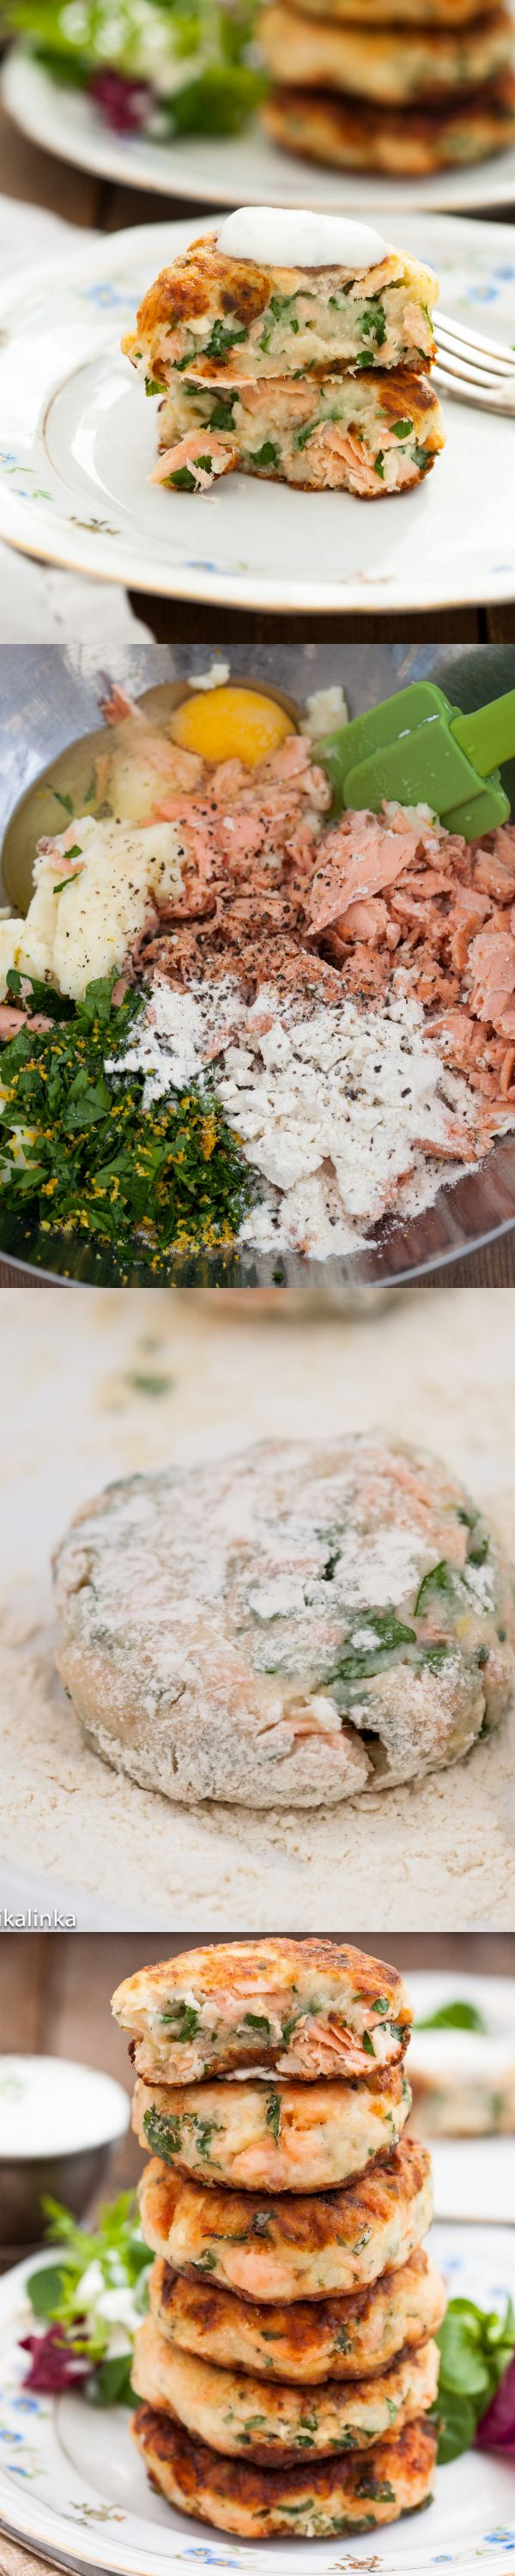 My FAVORITE Recipes: Salmon Cakes with Chive and Garlic Sauce - Vikalin...